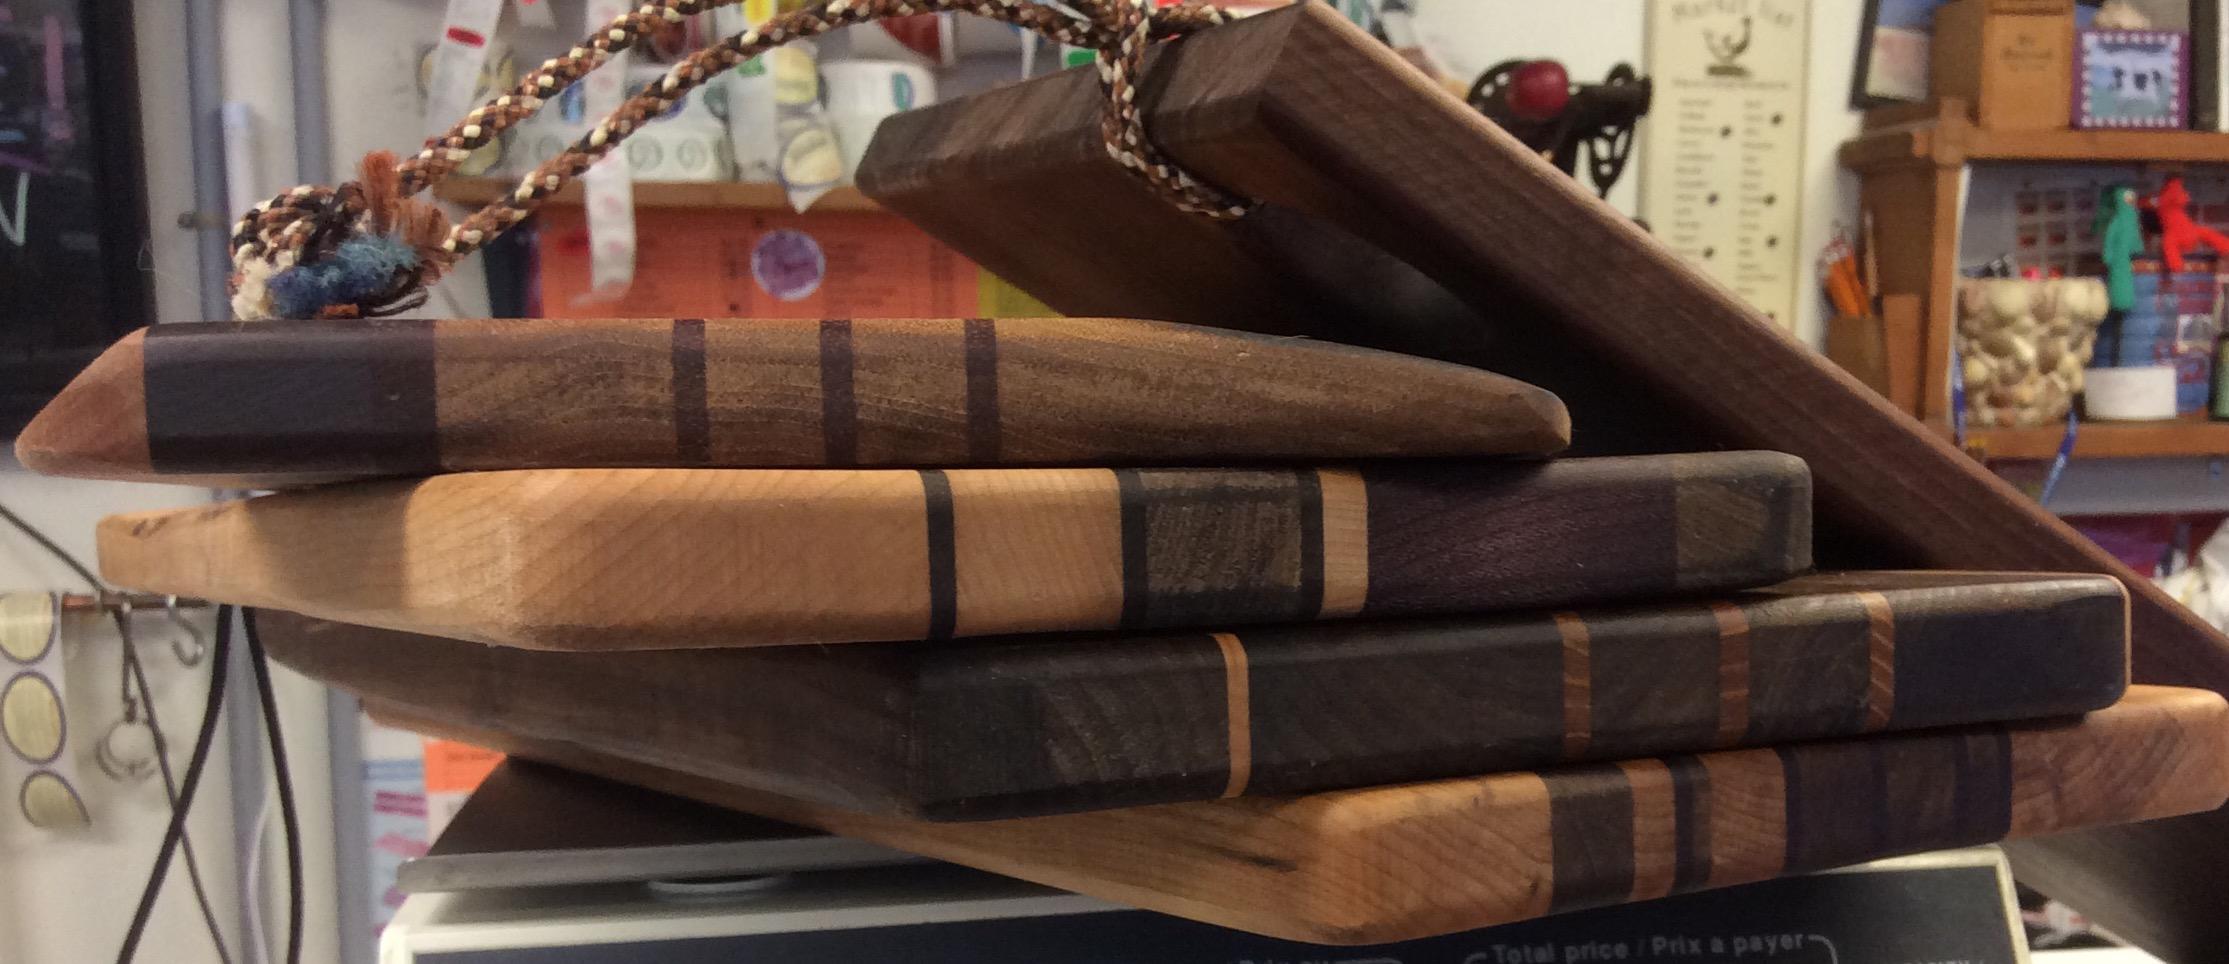 Locally Crafted Cutting Boards